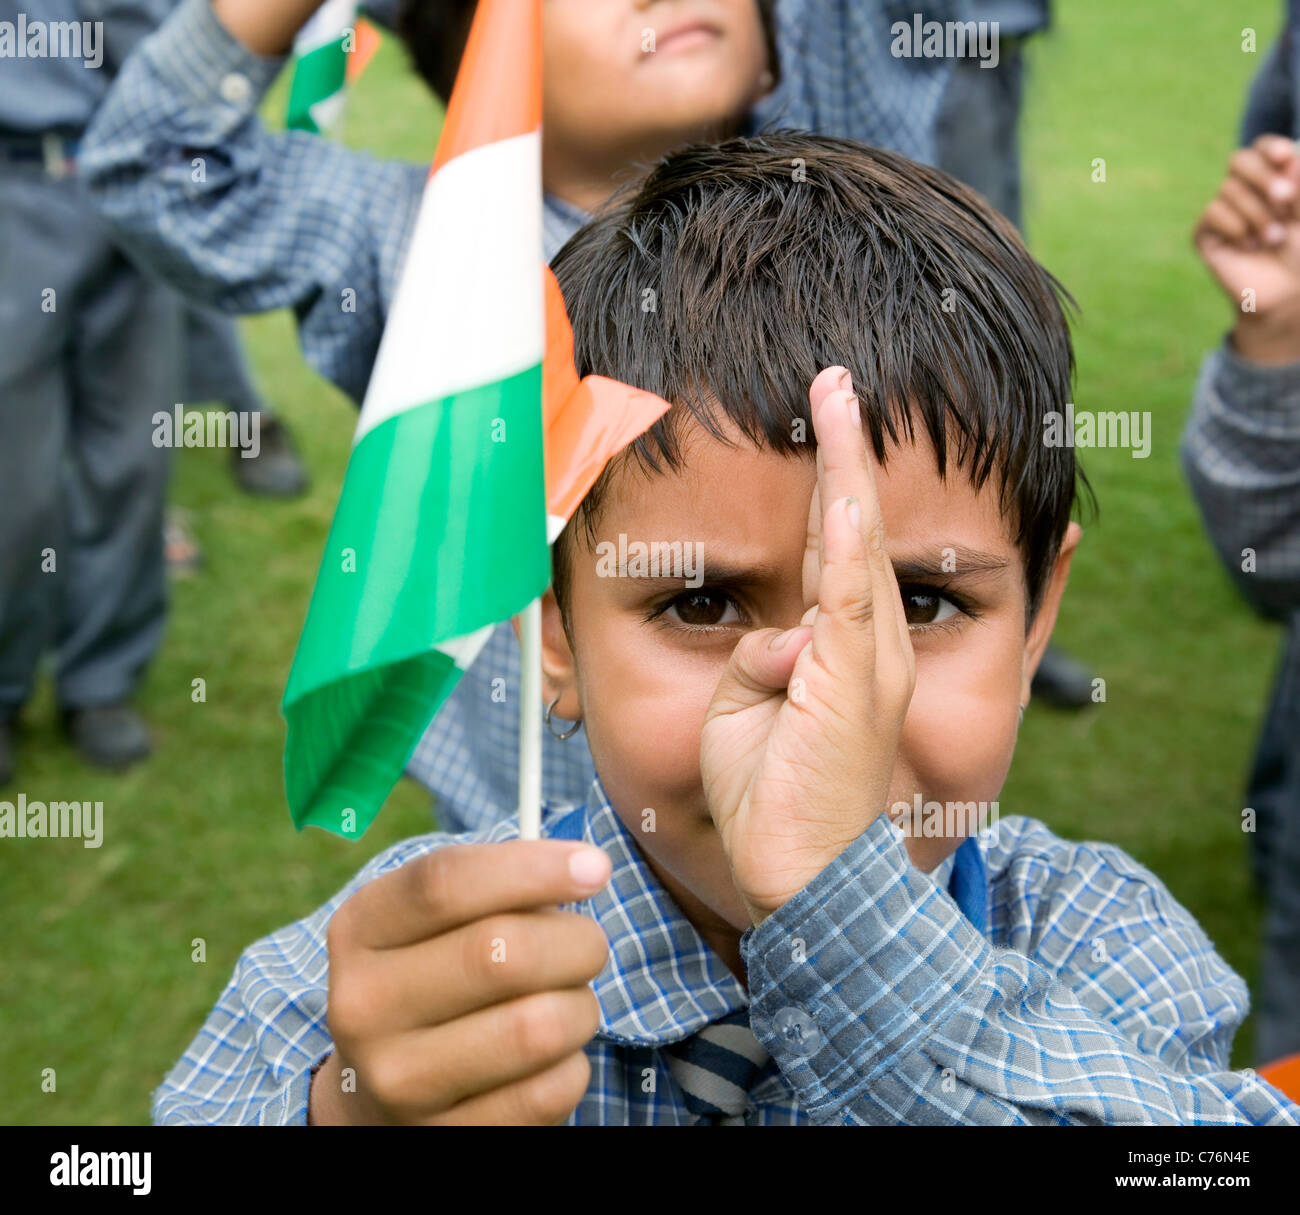 Portrait of a school girl holding the Indian flag - Stock Image